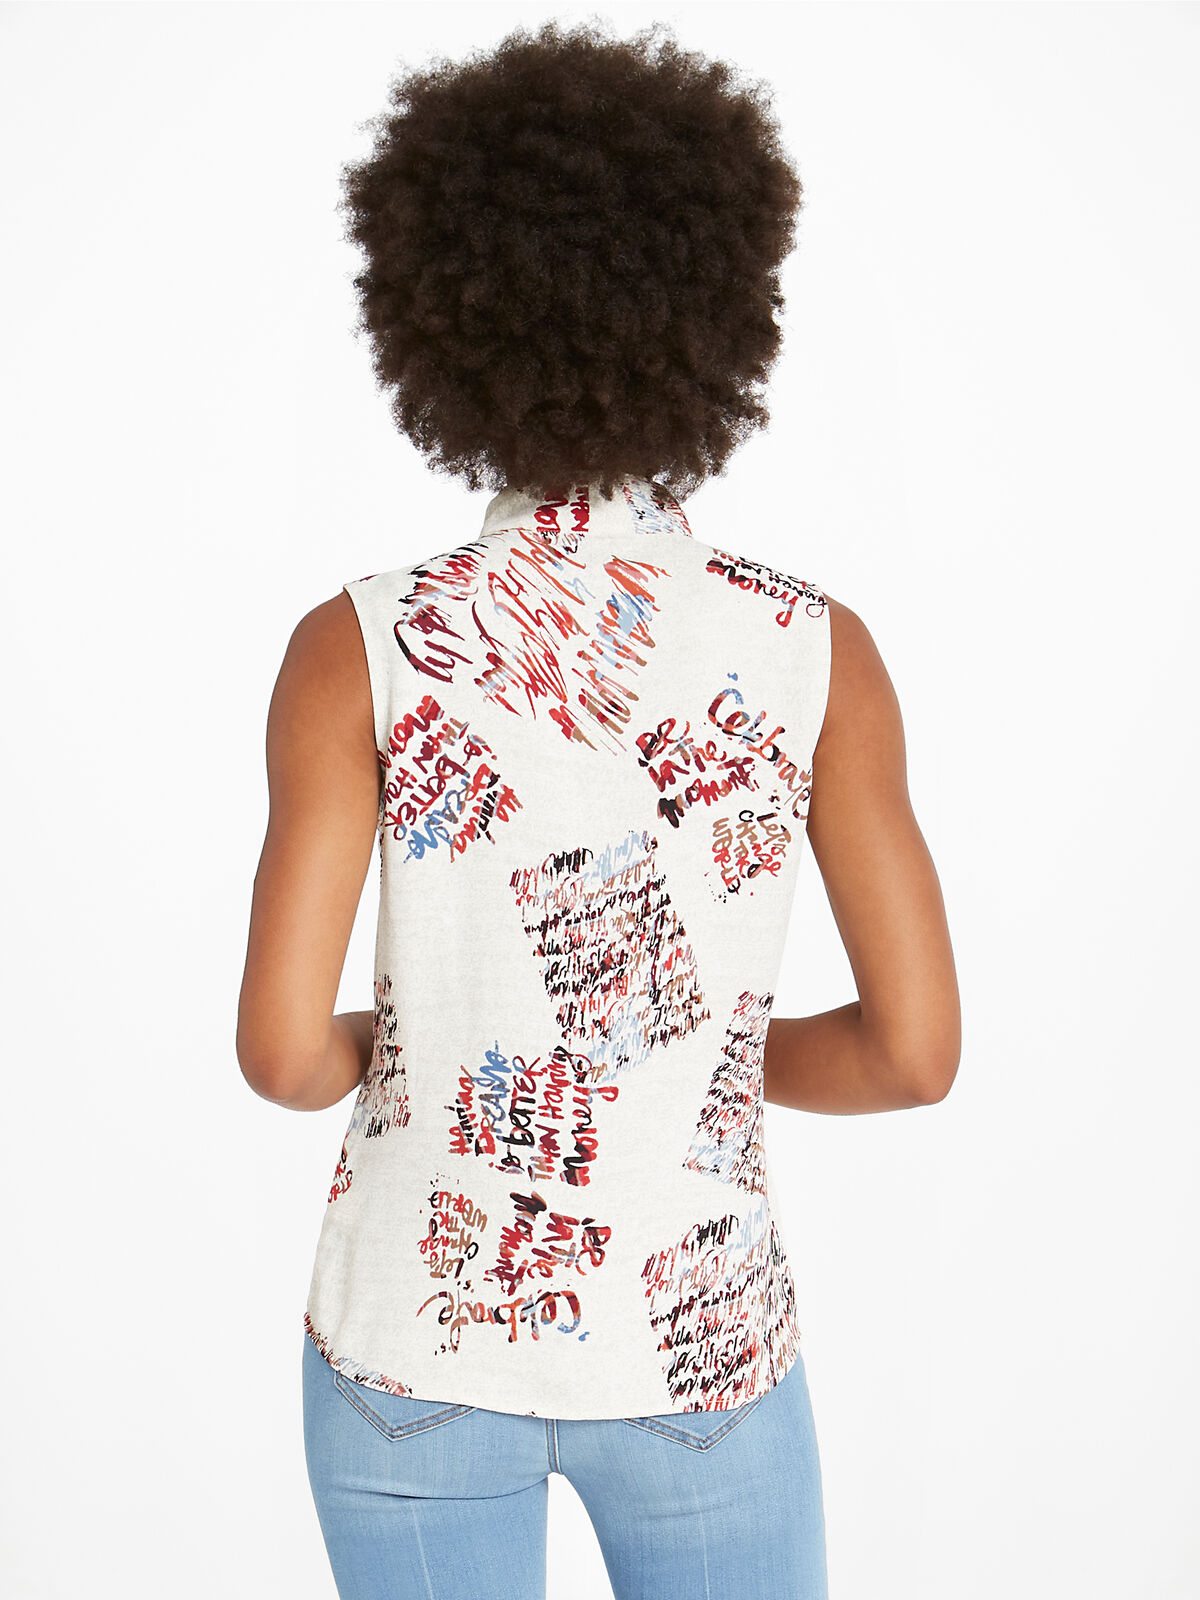 Scattered Letters Tank